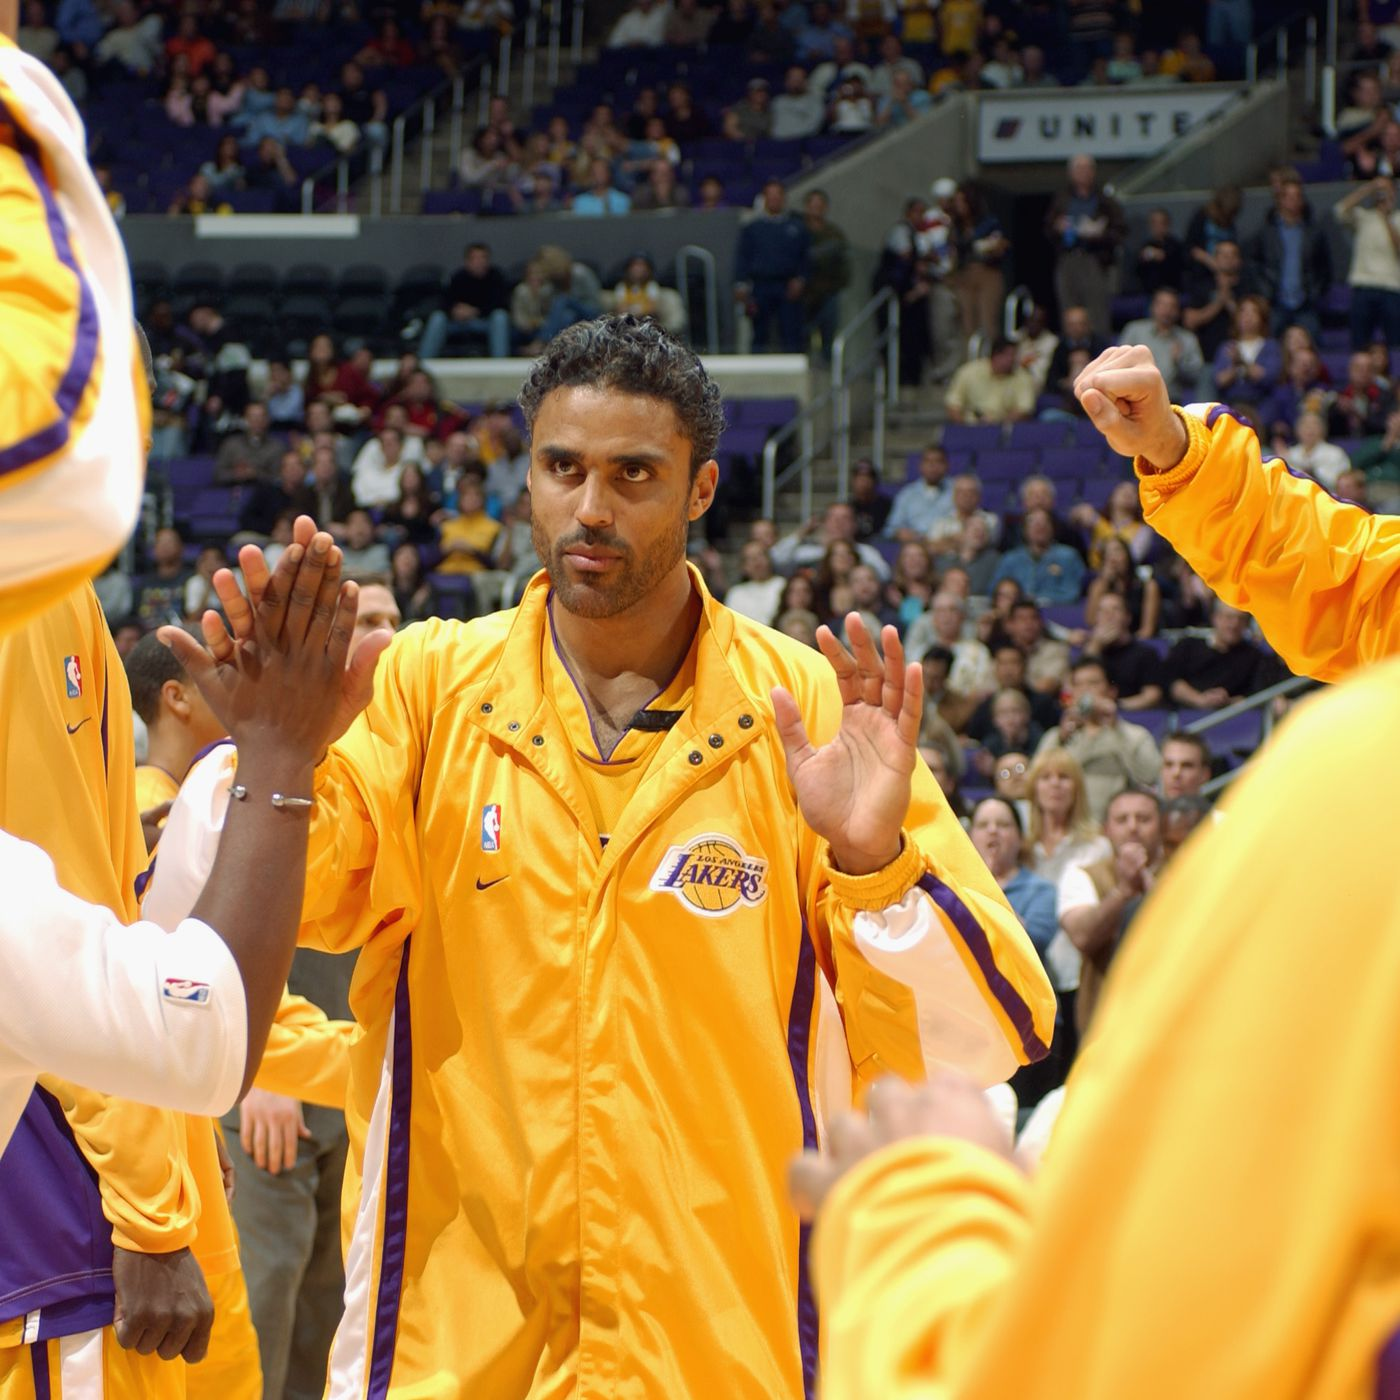 Lakers Profile: Rick Fox, the beloved instigator - Silver Screen and Roll